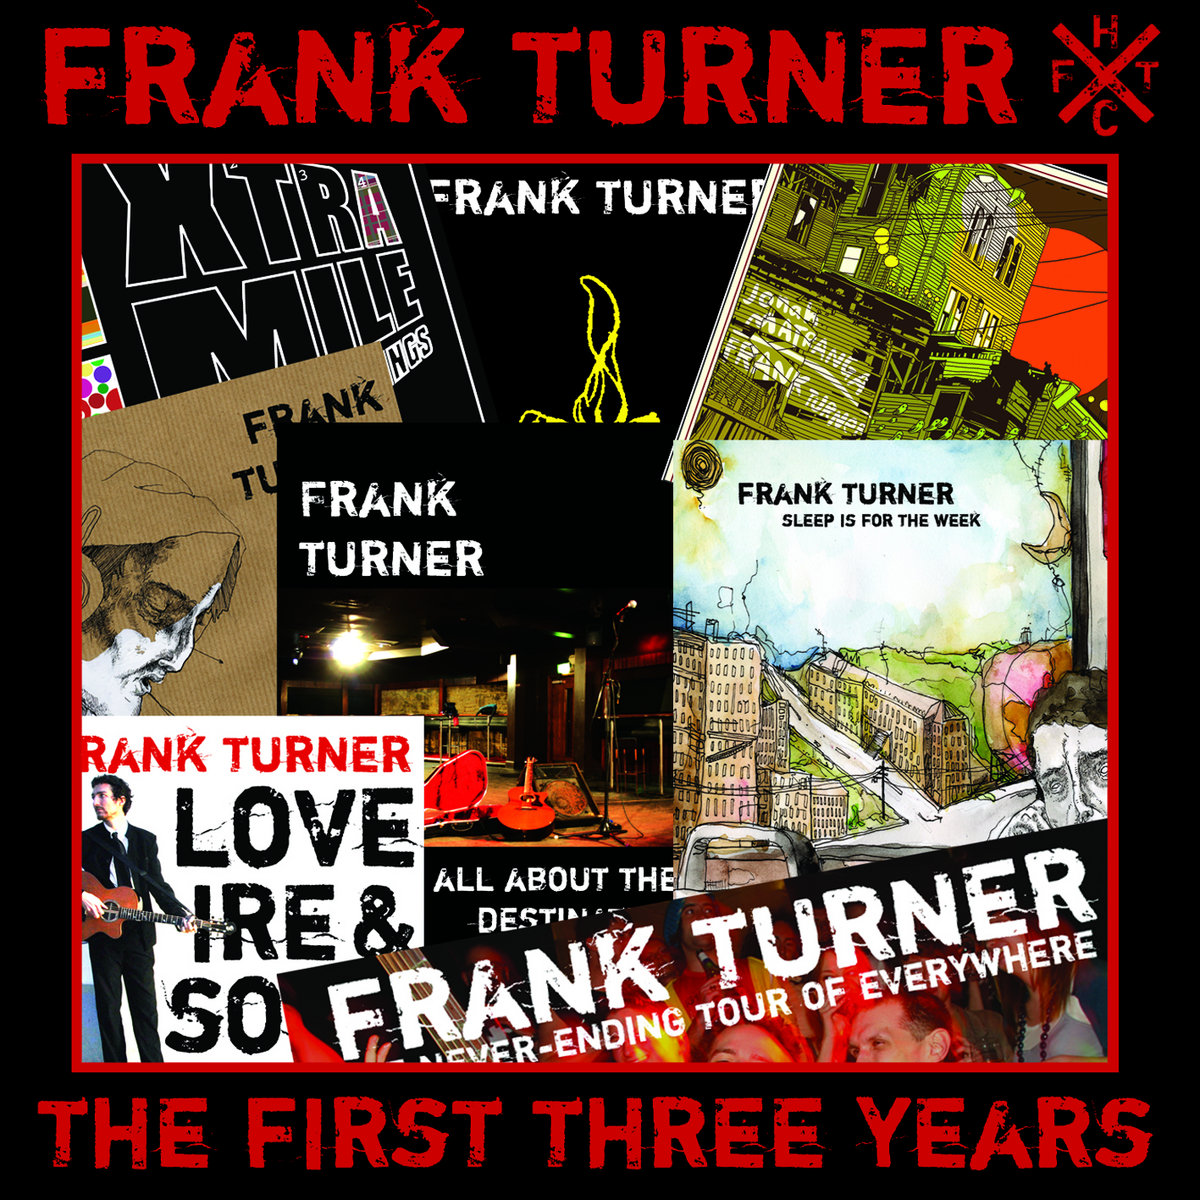 Frank Turner - The First 3 Years